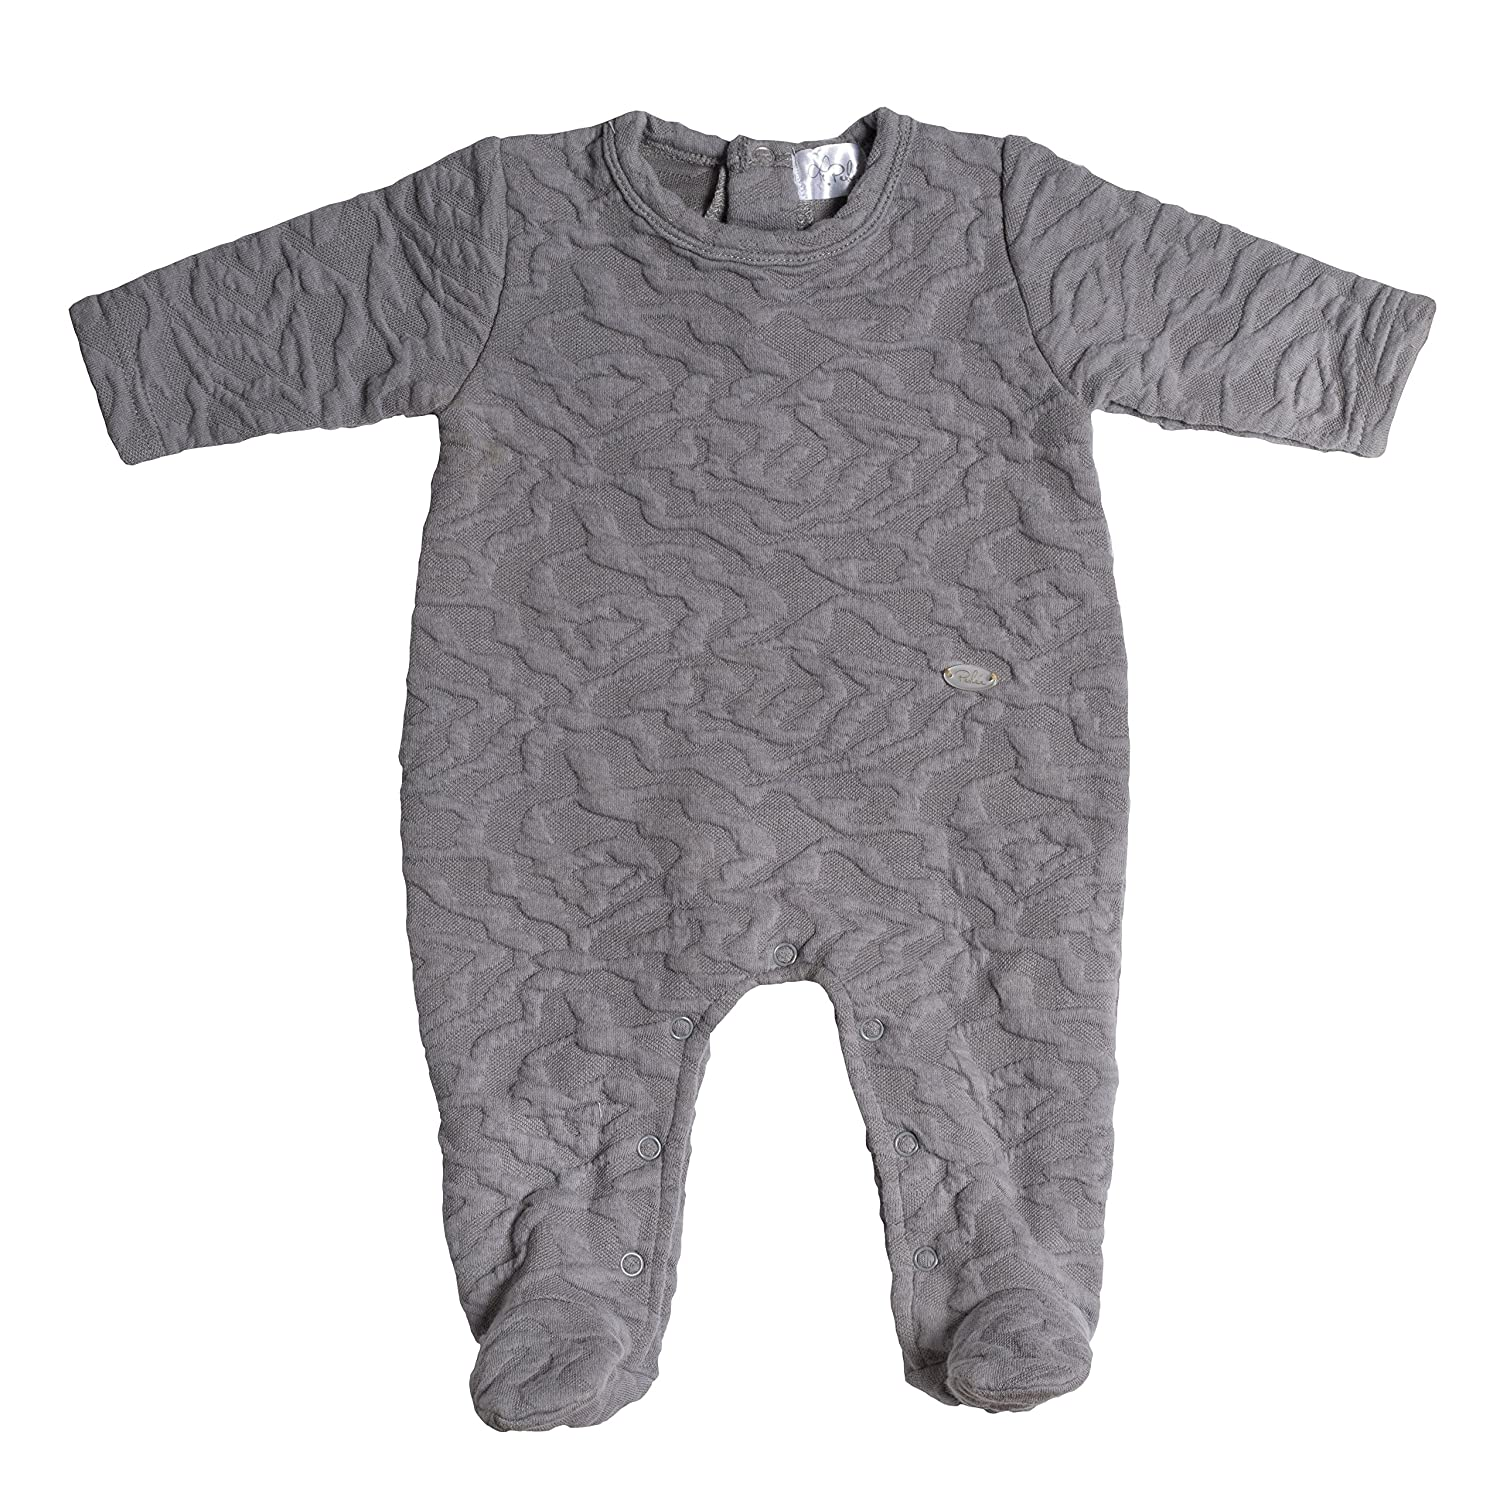 Jack /& Jill Textured Cotton Grey Footie